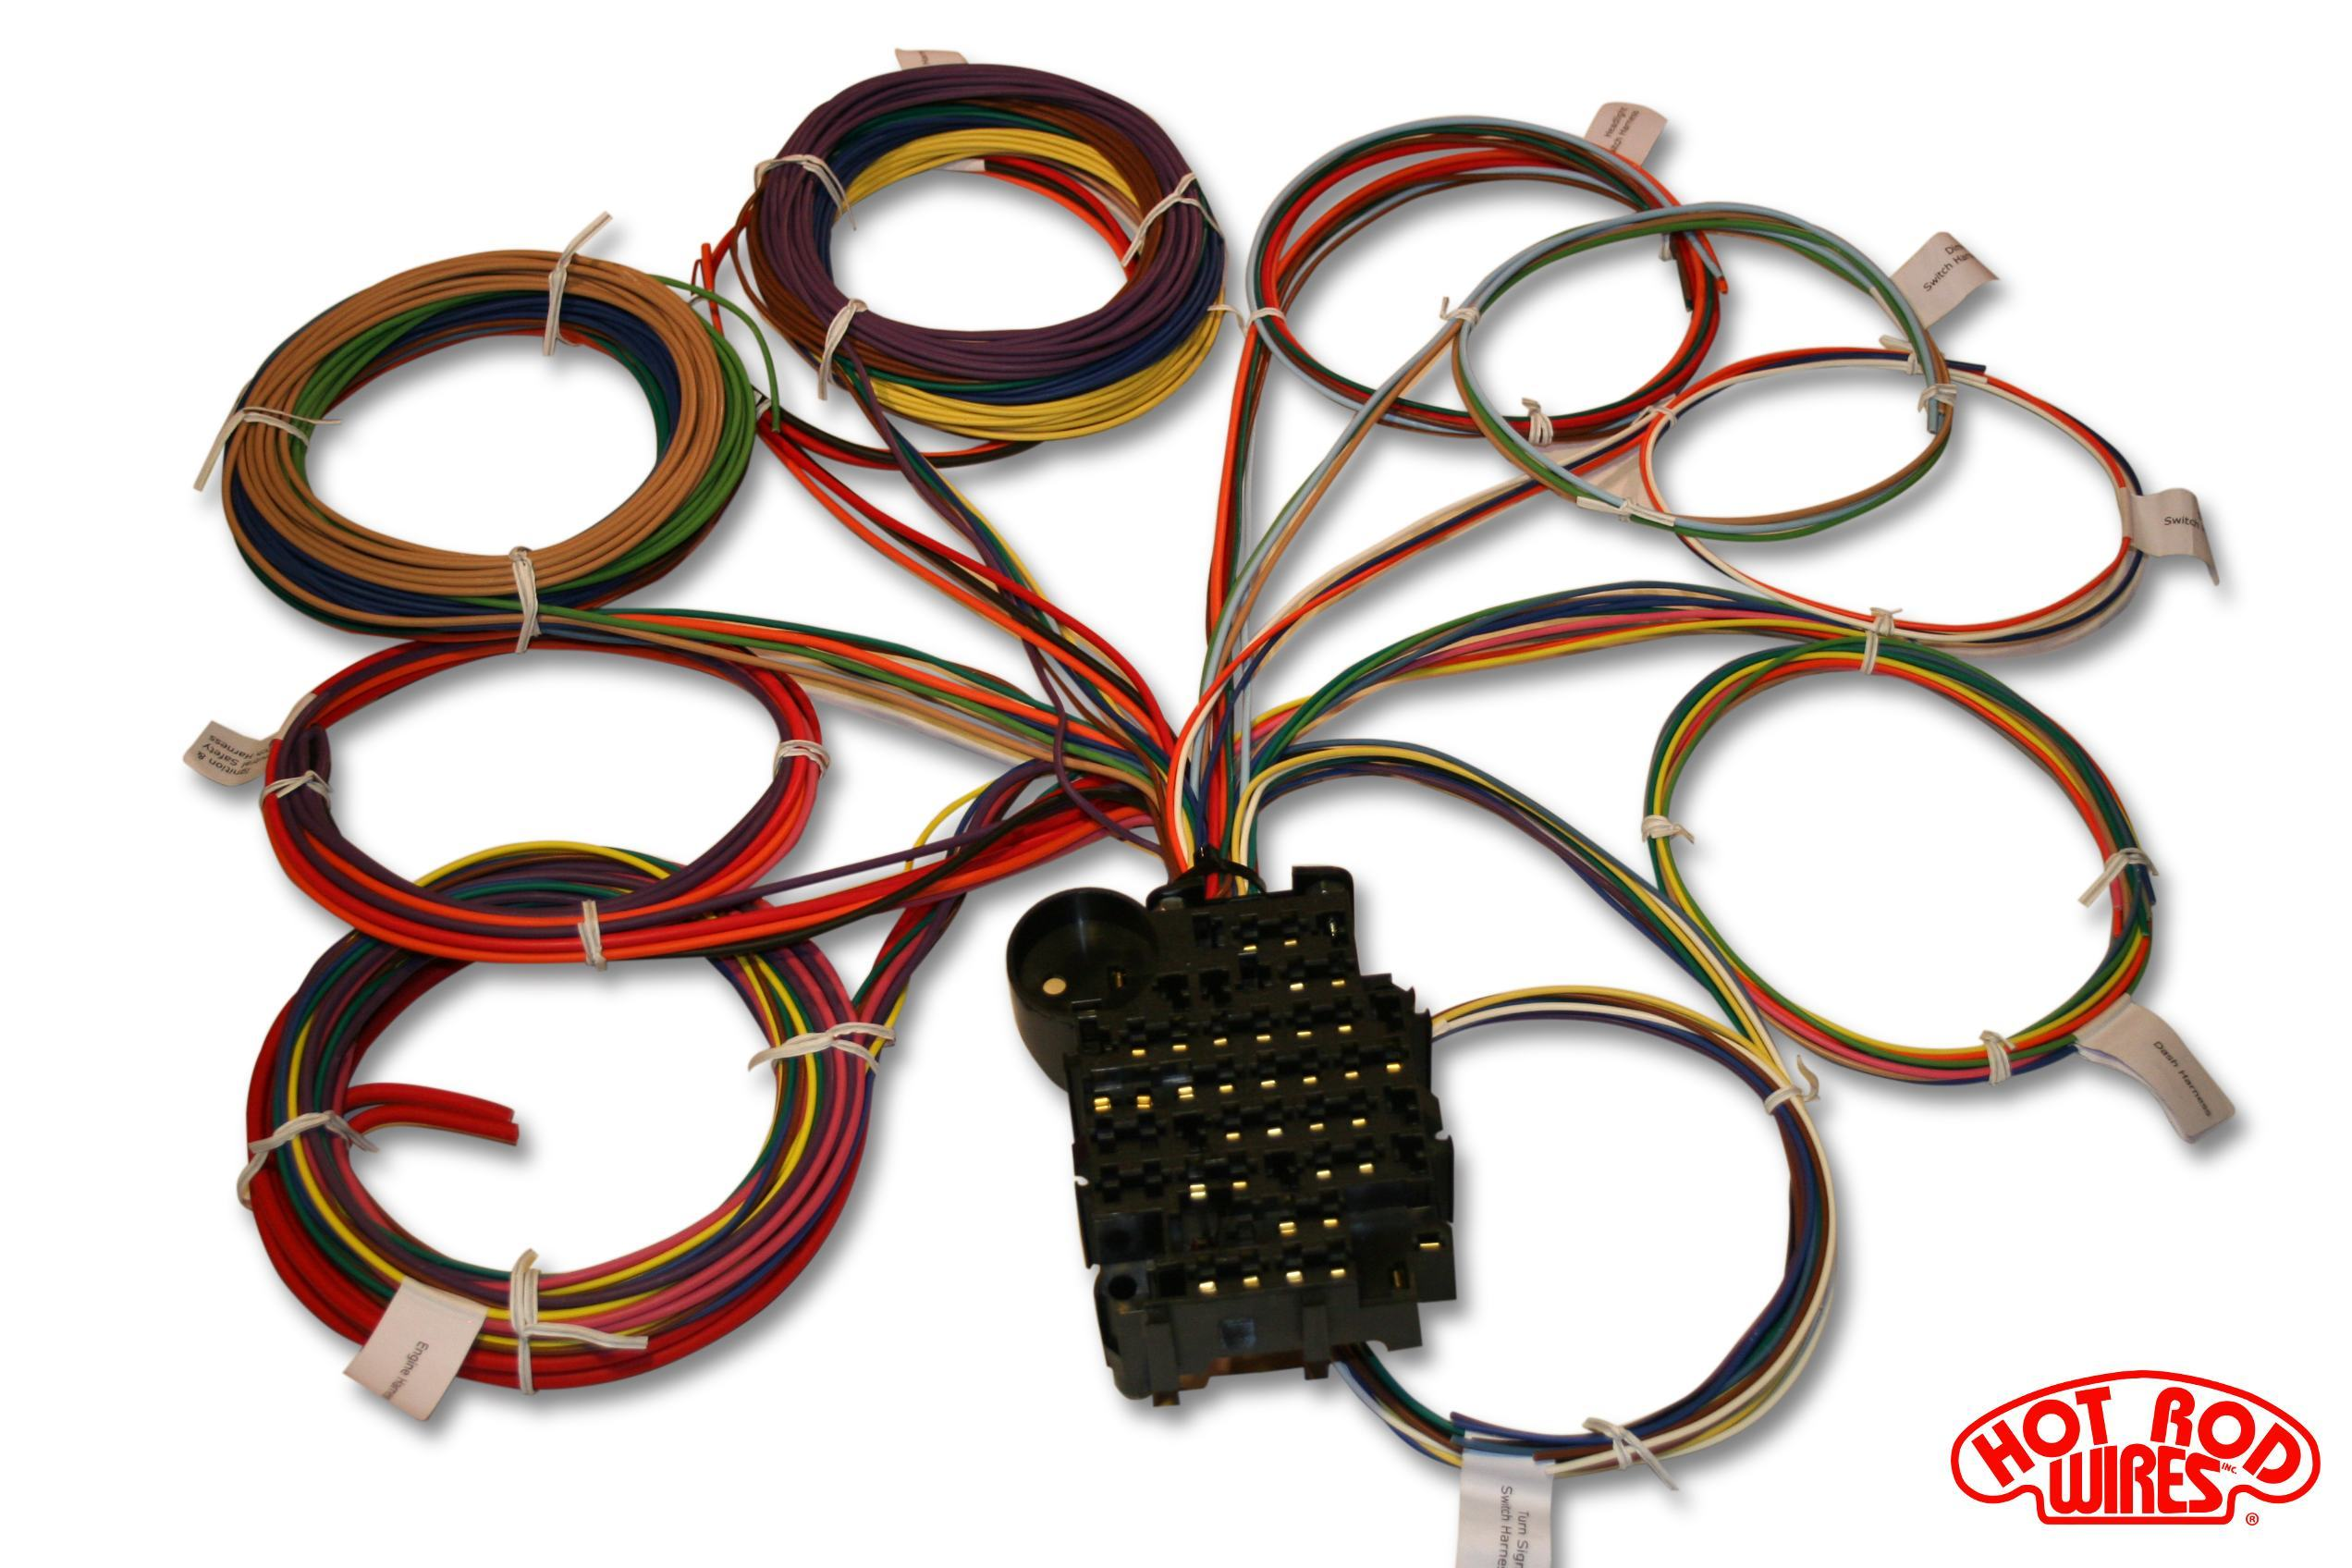 18 circuit harness overhead universal 18 circuit auto wiring harness hotrodwires com hot rod wiring harness universal at mifinder.co